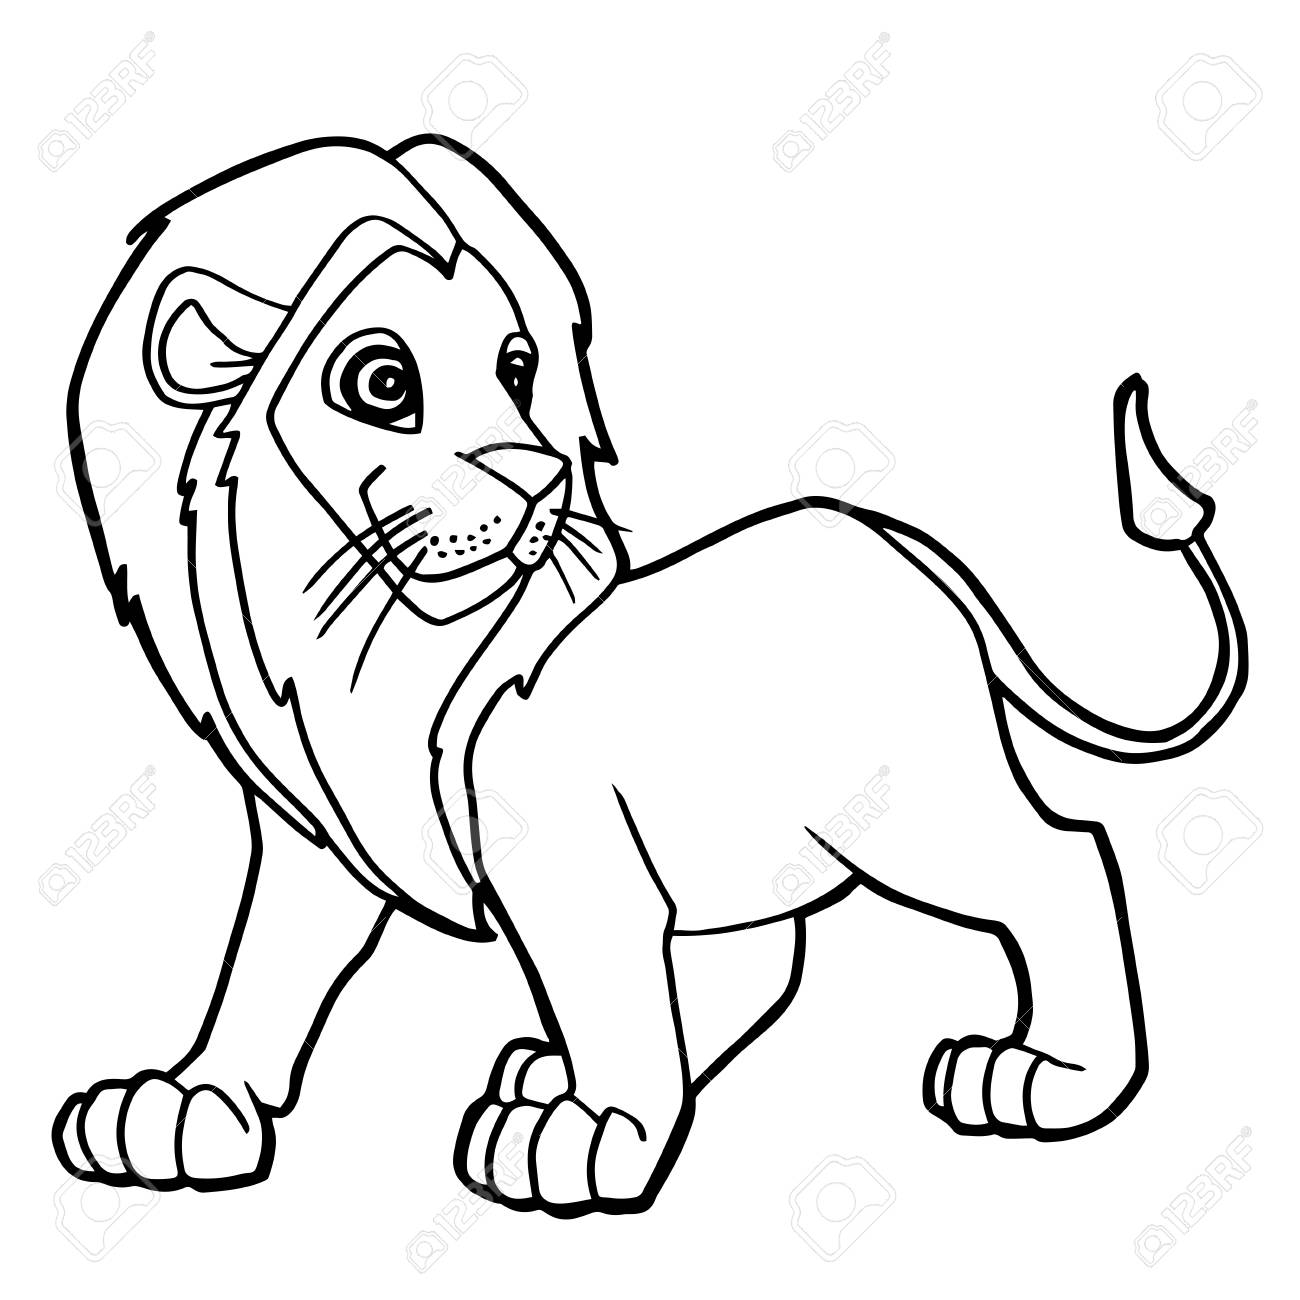 Cartoon Cute Lion Coloring Page Vector Illustration Royalty Free ...